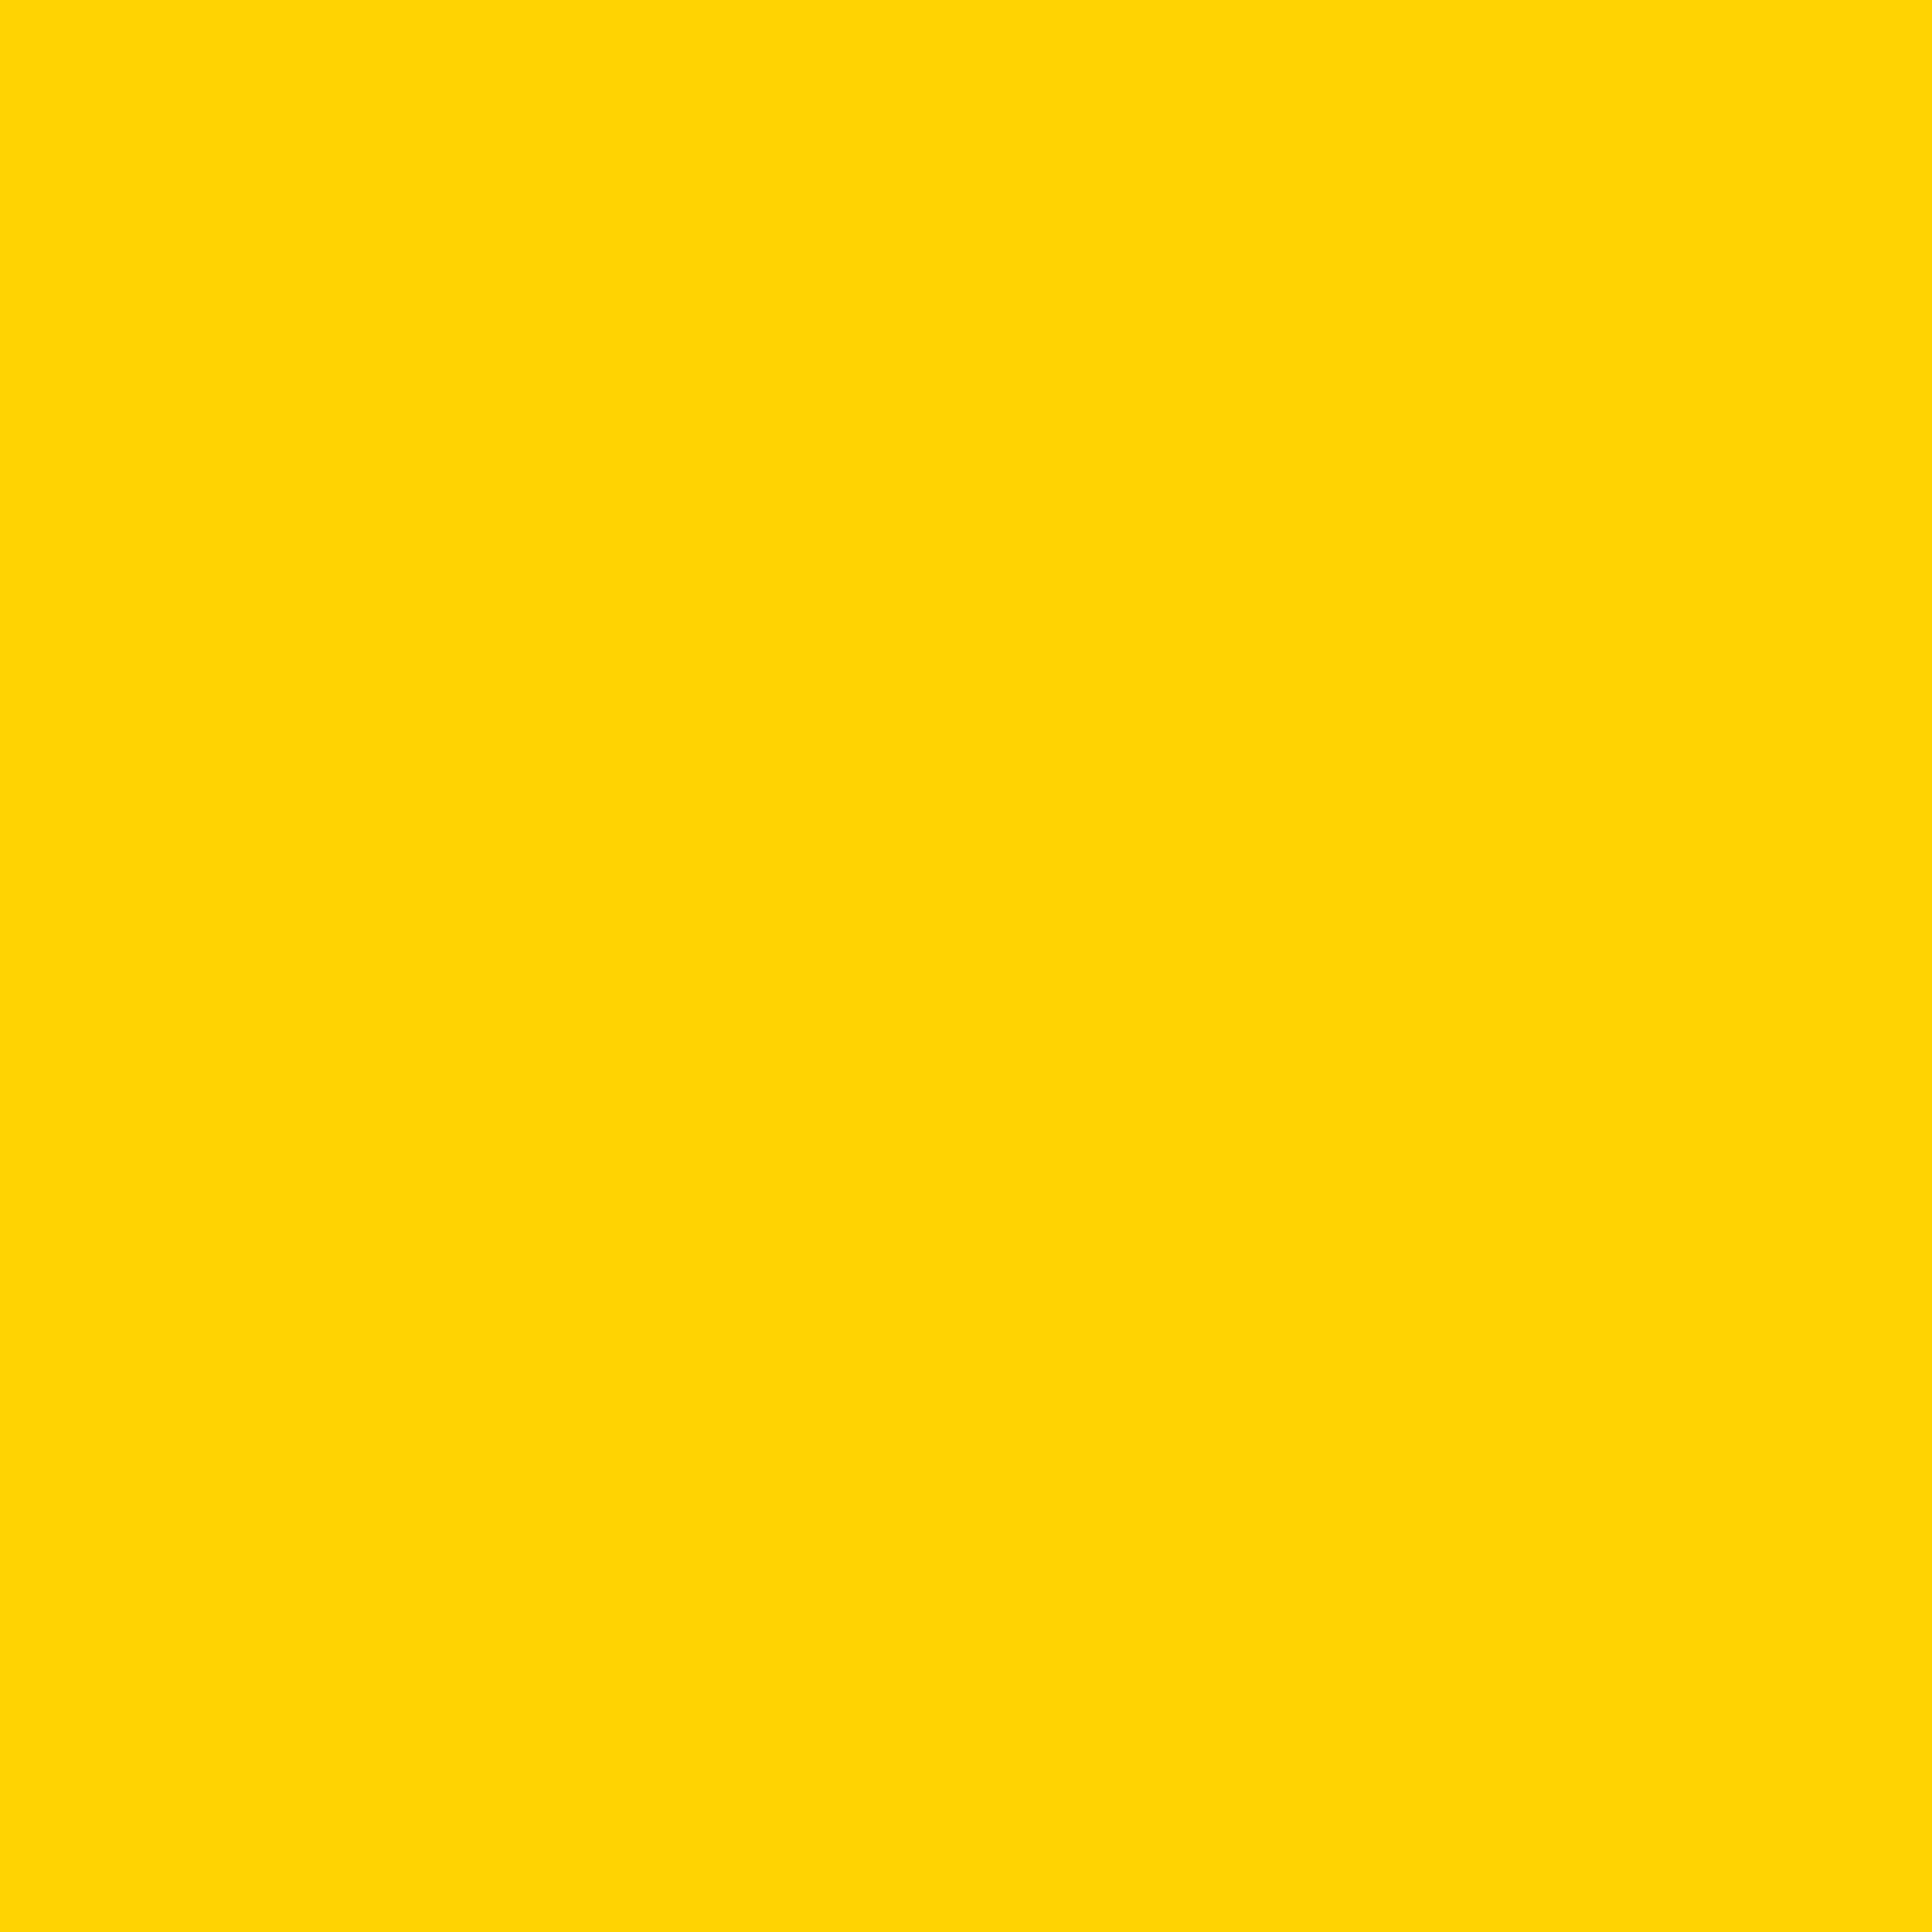 3600x3600 Yellow NCS Solid Color Background